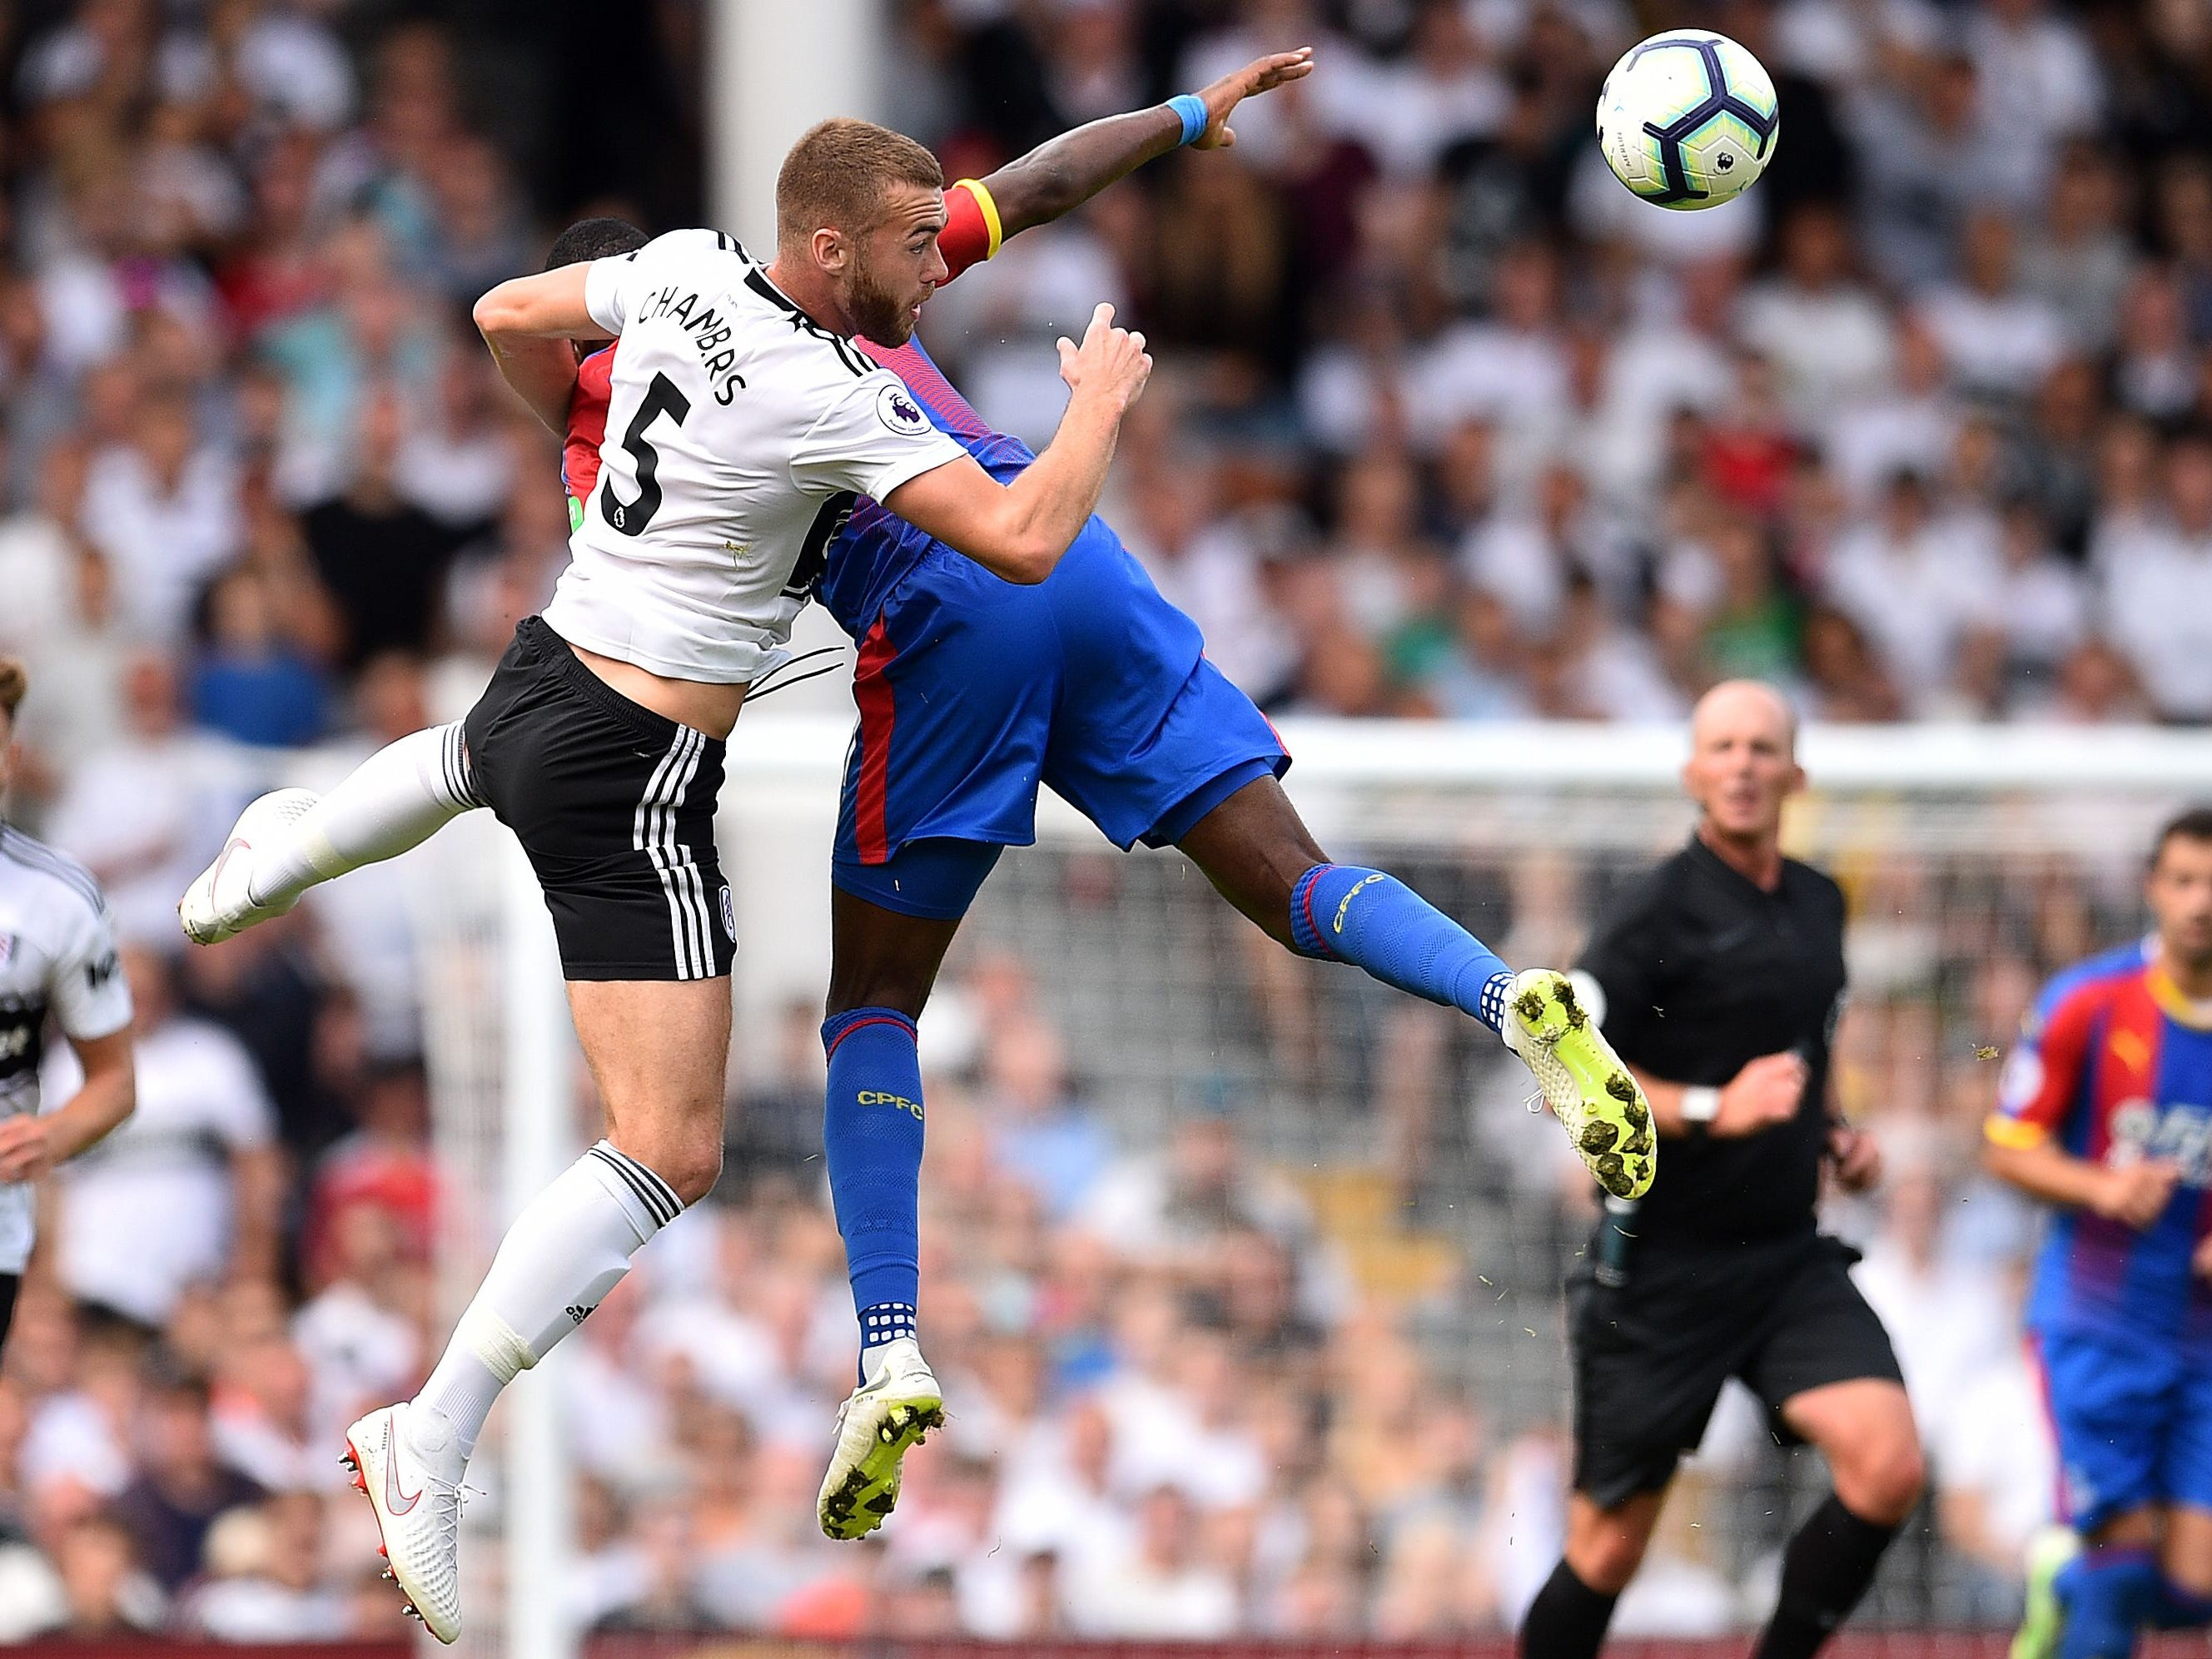 Fulham defender Calum Chambers vies for the ball with Crystal Palace striker Christian Benteke.